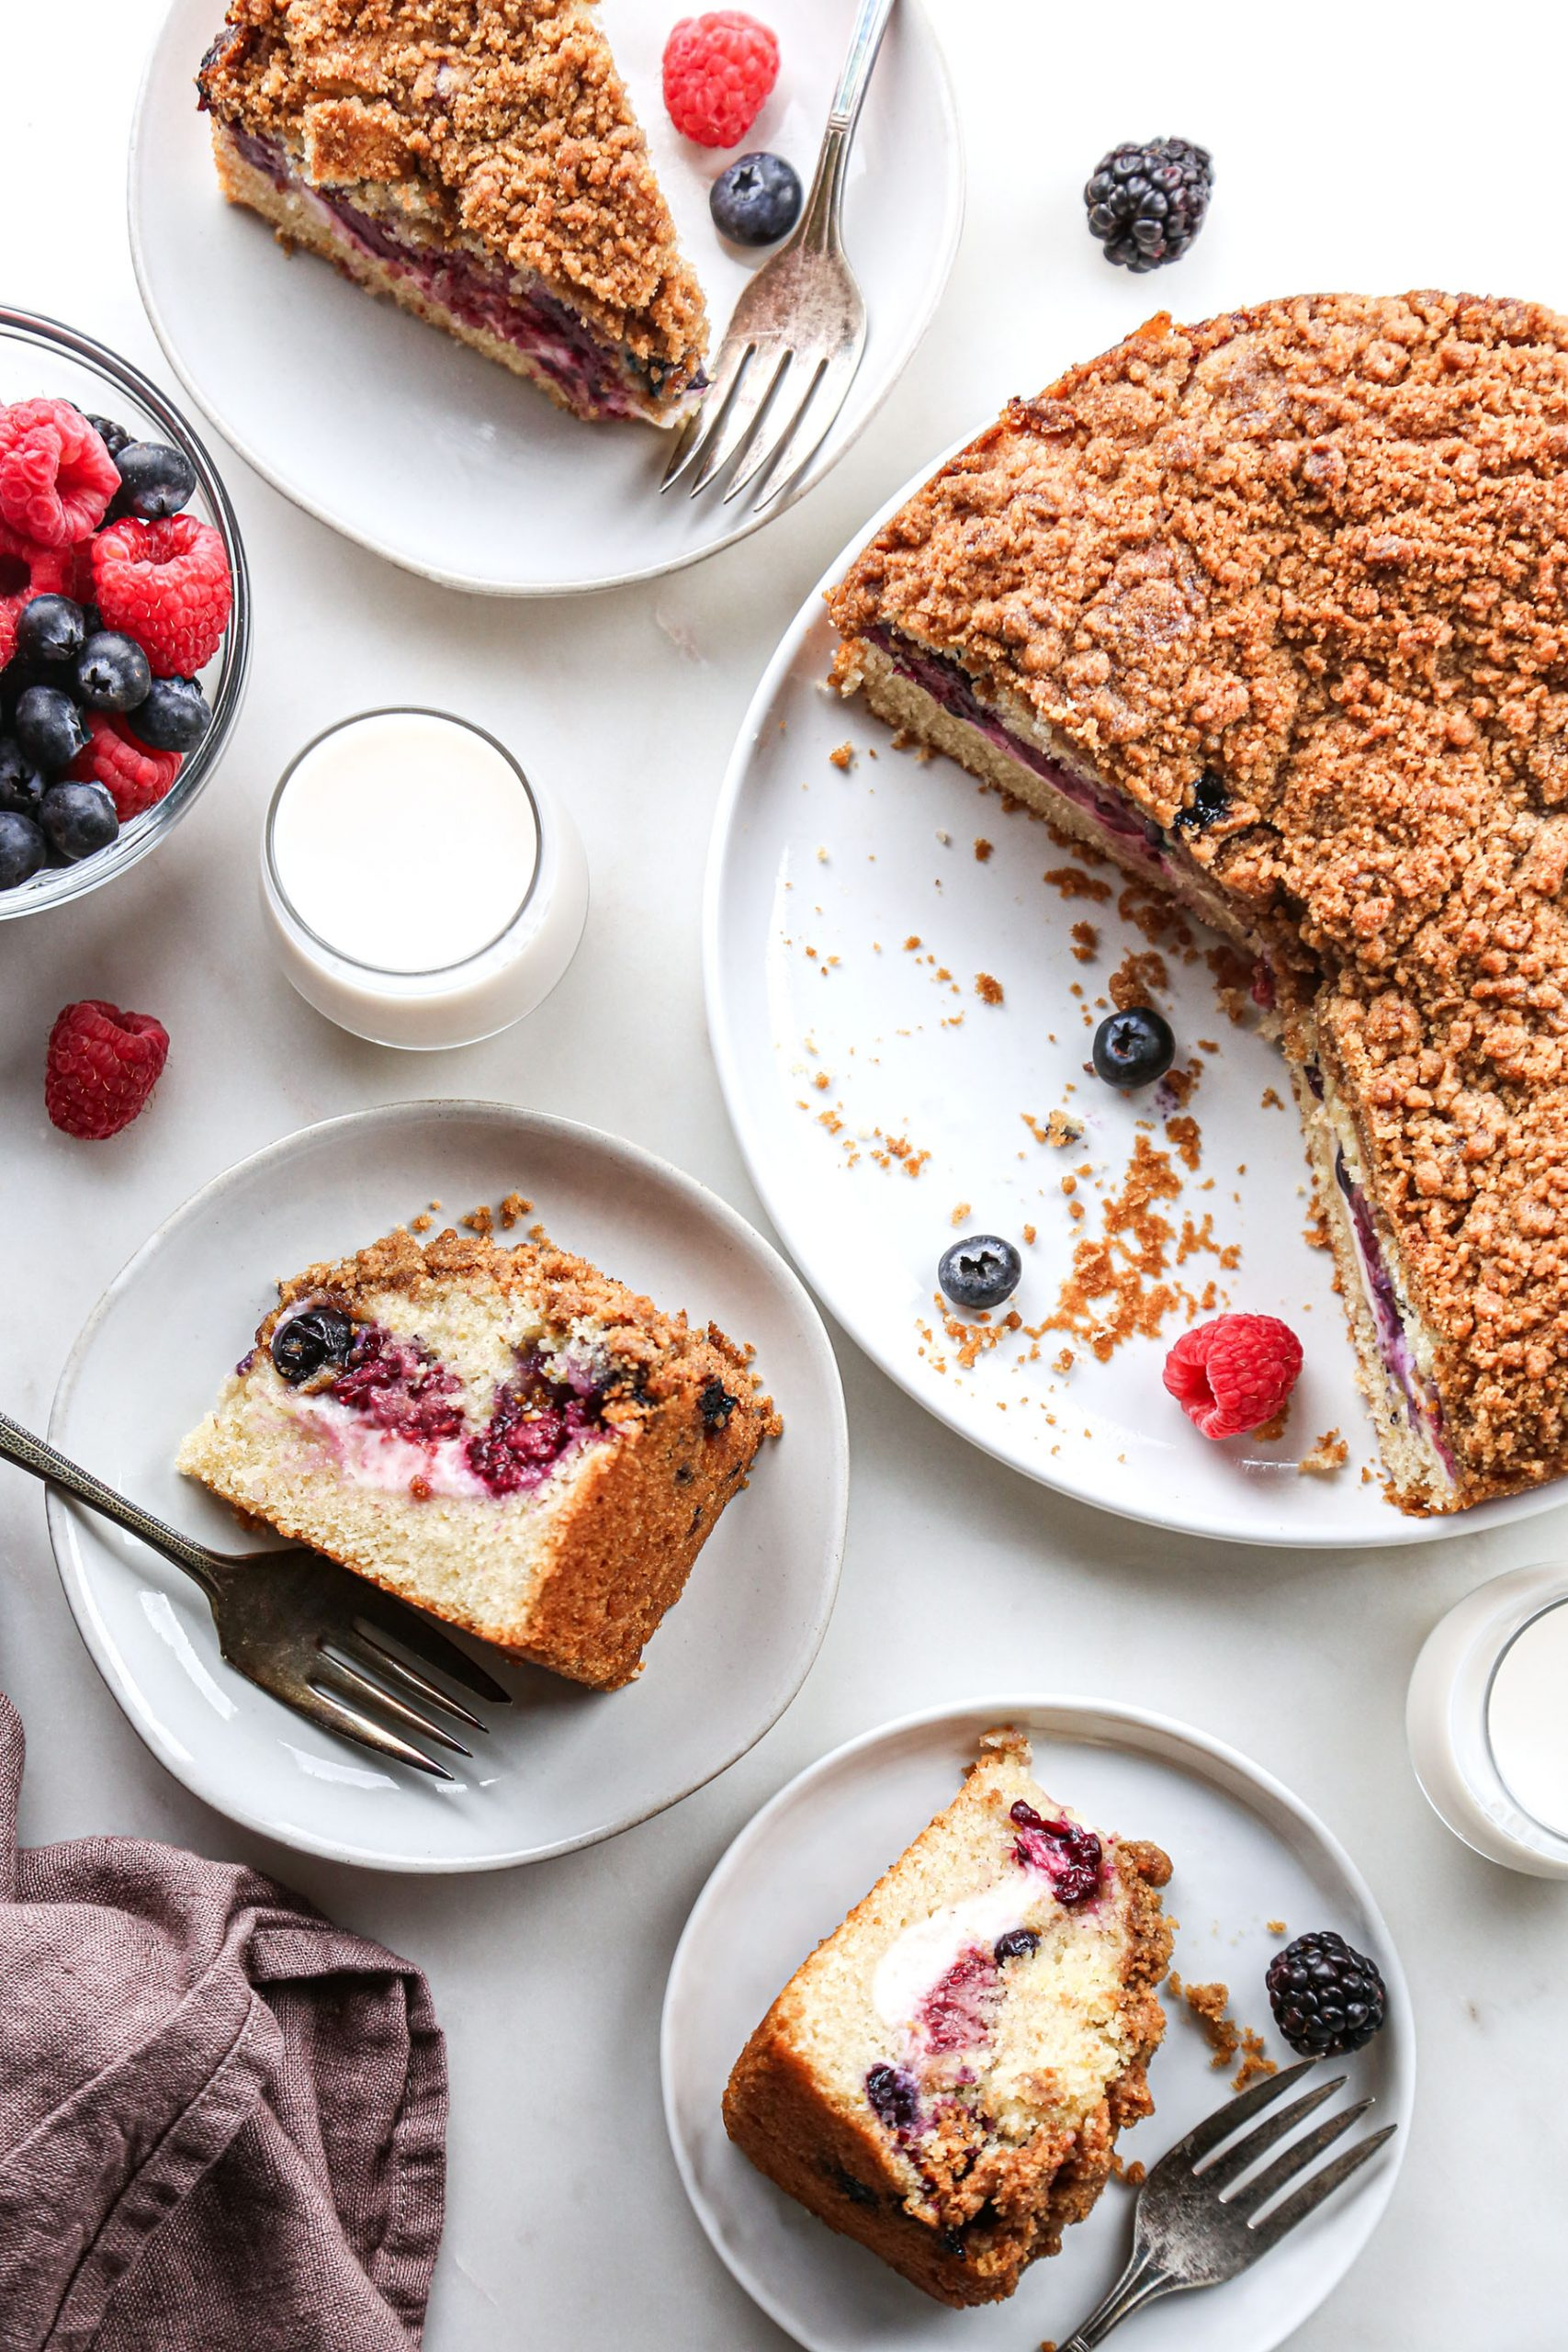 Berry Cream Cheese Coffee Cake Overhead with slices on plates